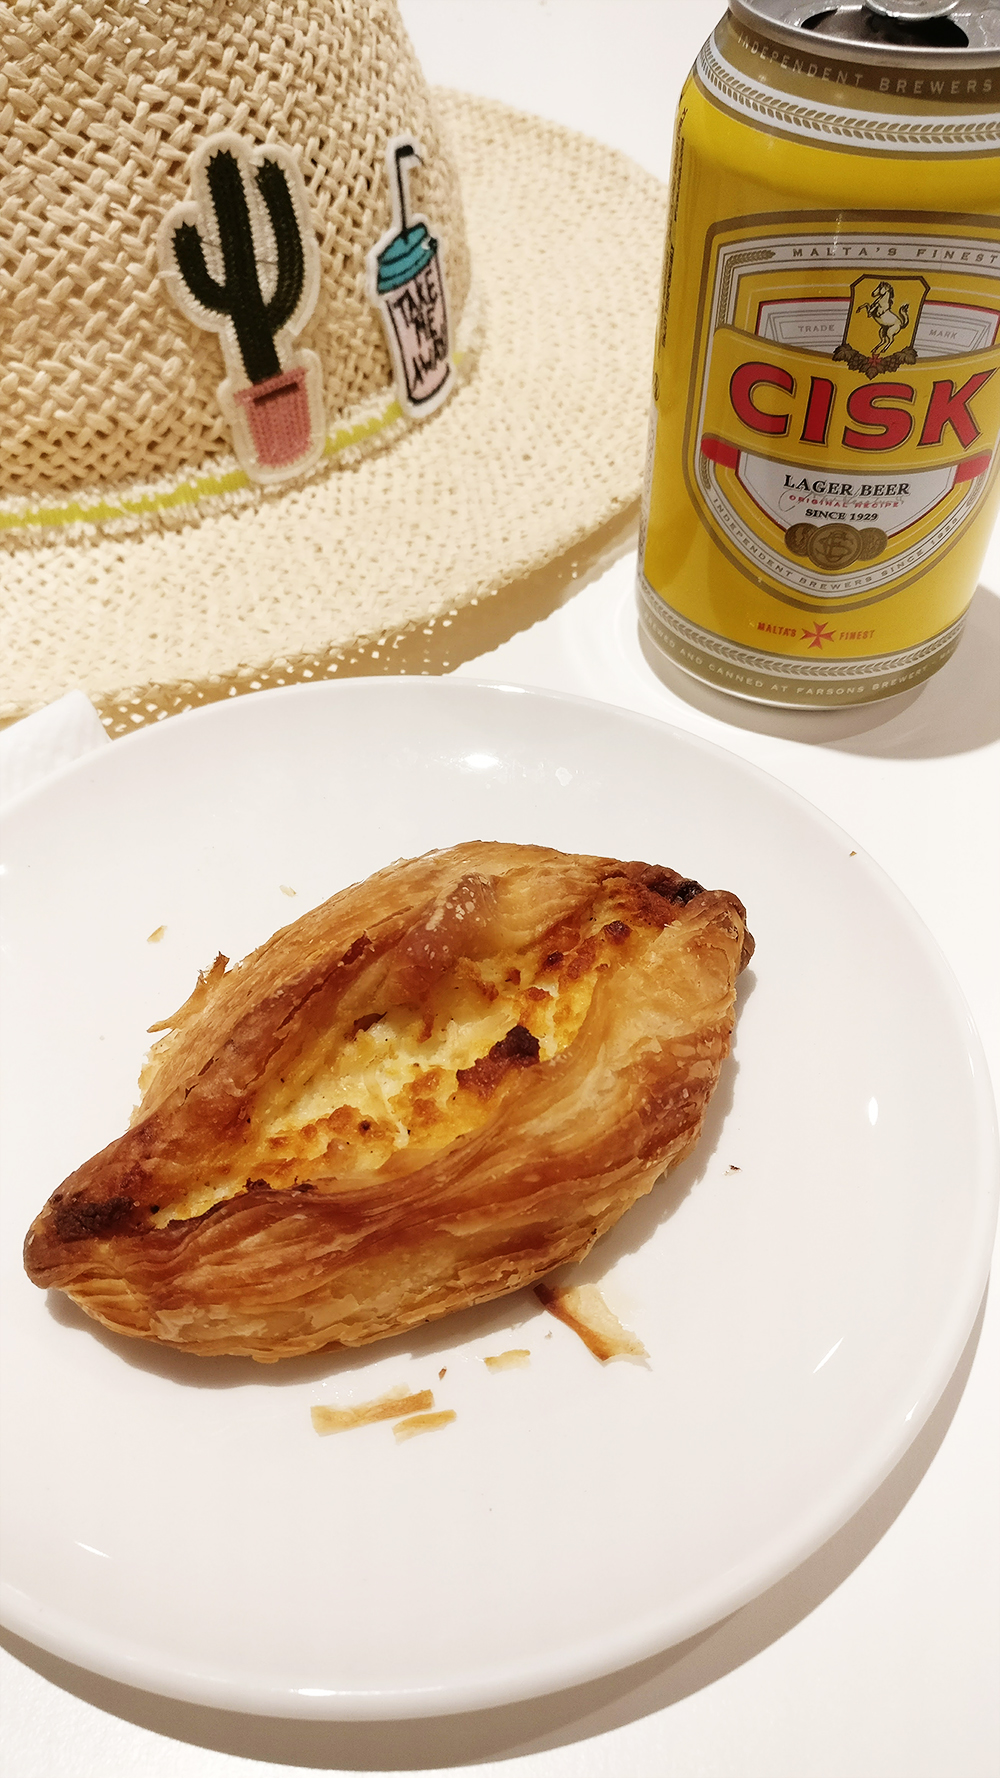 About Malta - Eating pastizzi and drinking Cisk